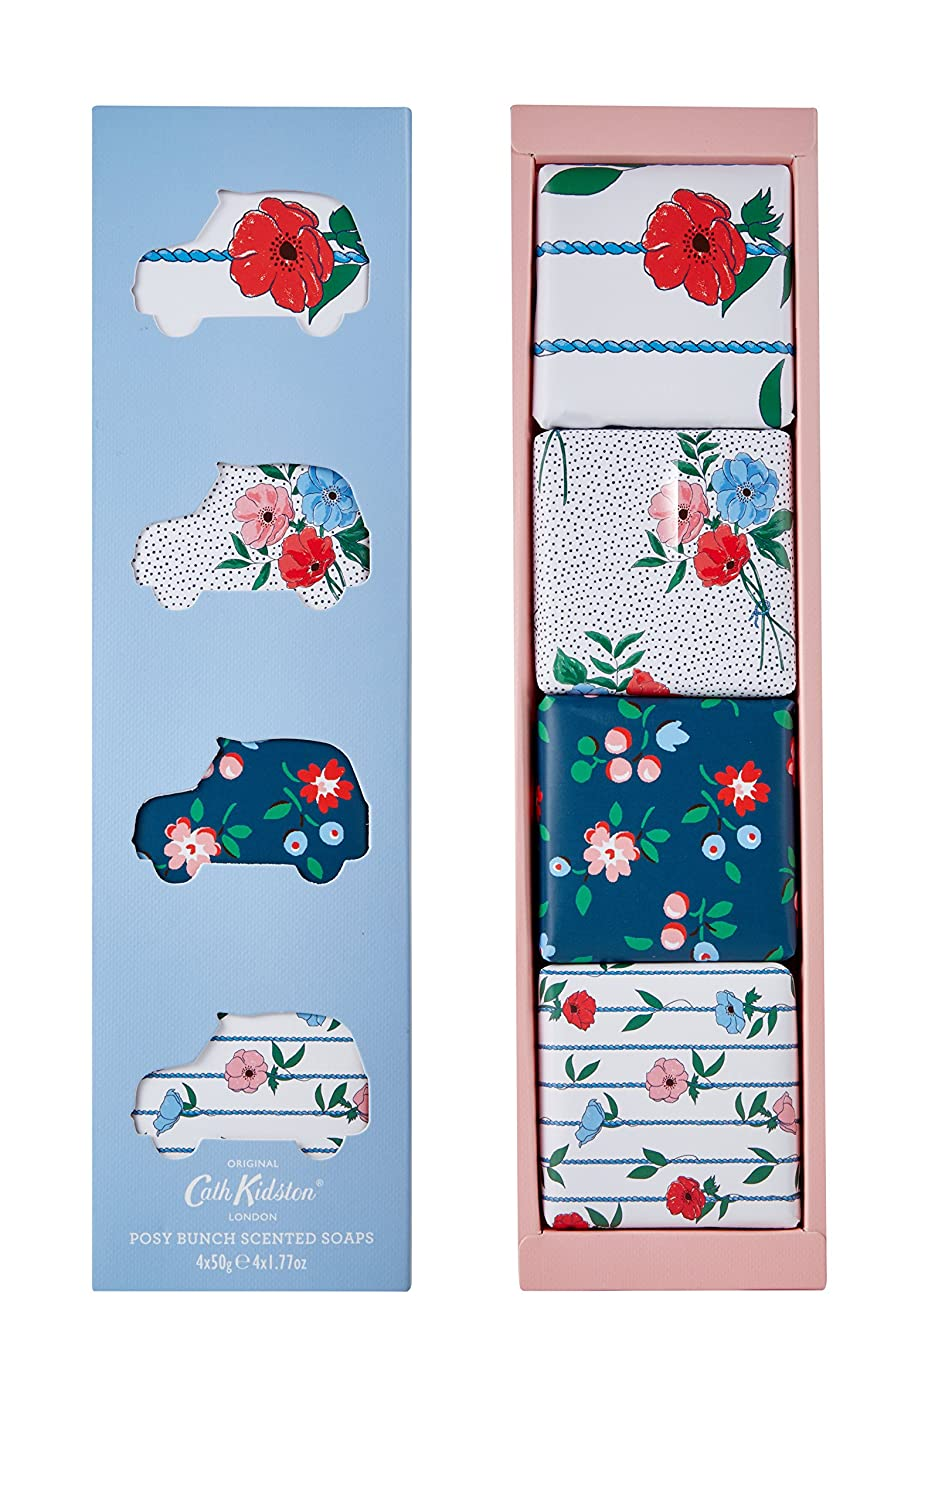 Cath Kidston Posy Bunch Scented Soaps, 50 g, Pack of 4 Heathcote & Ivory FG8905